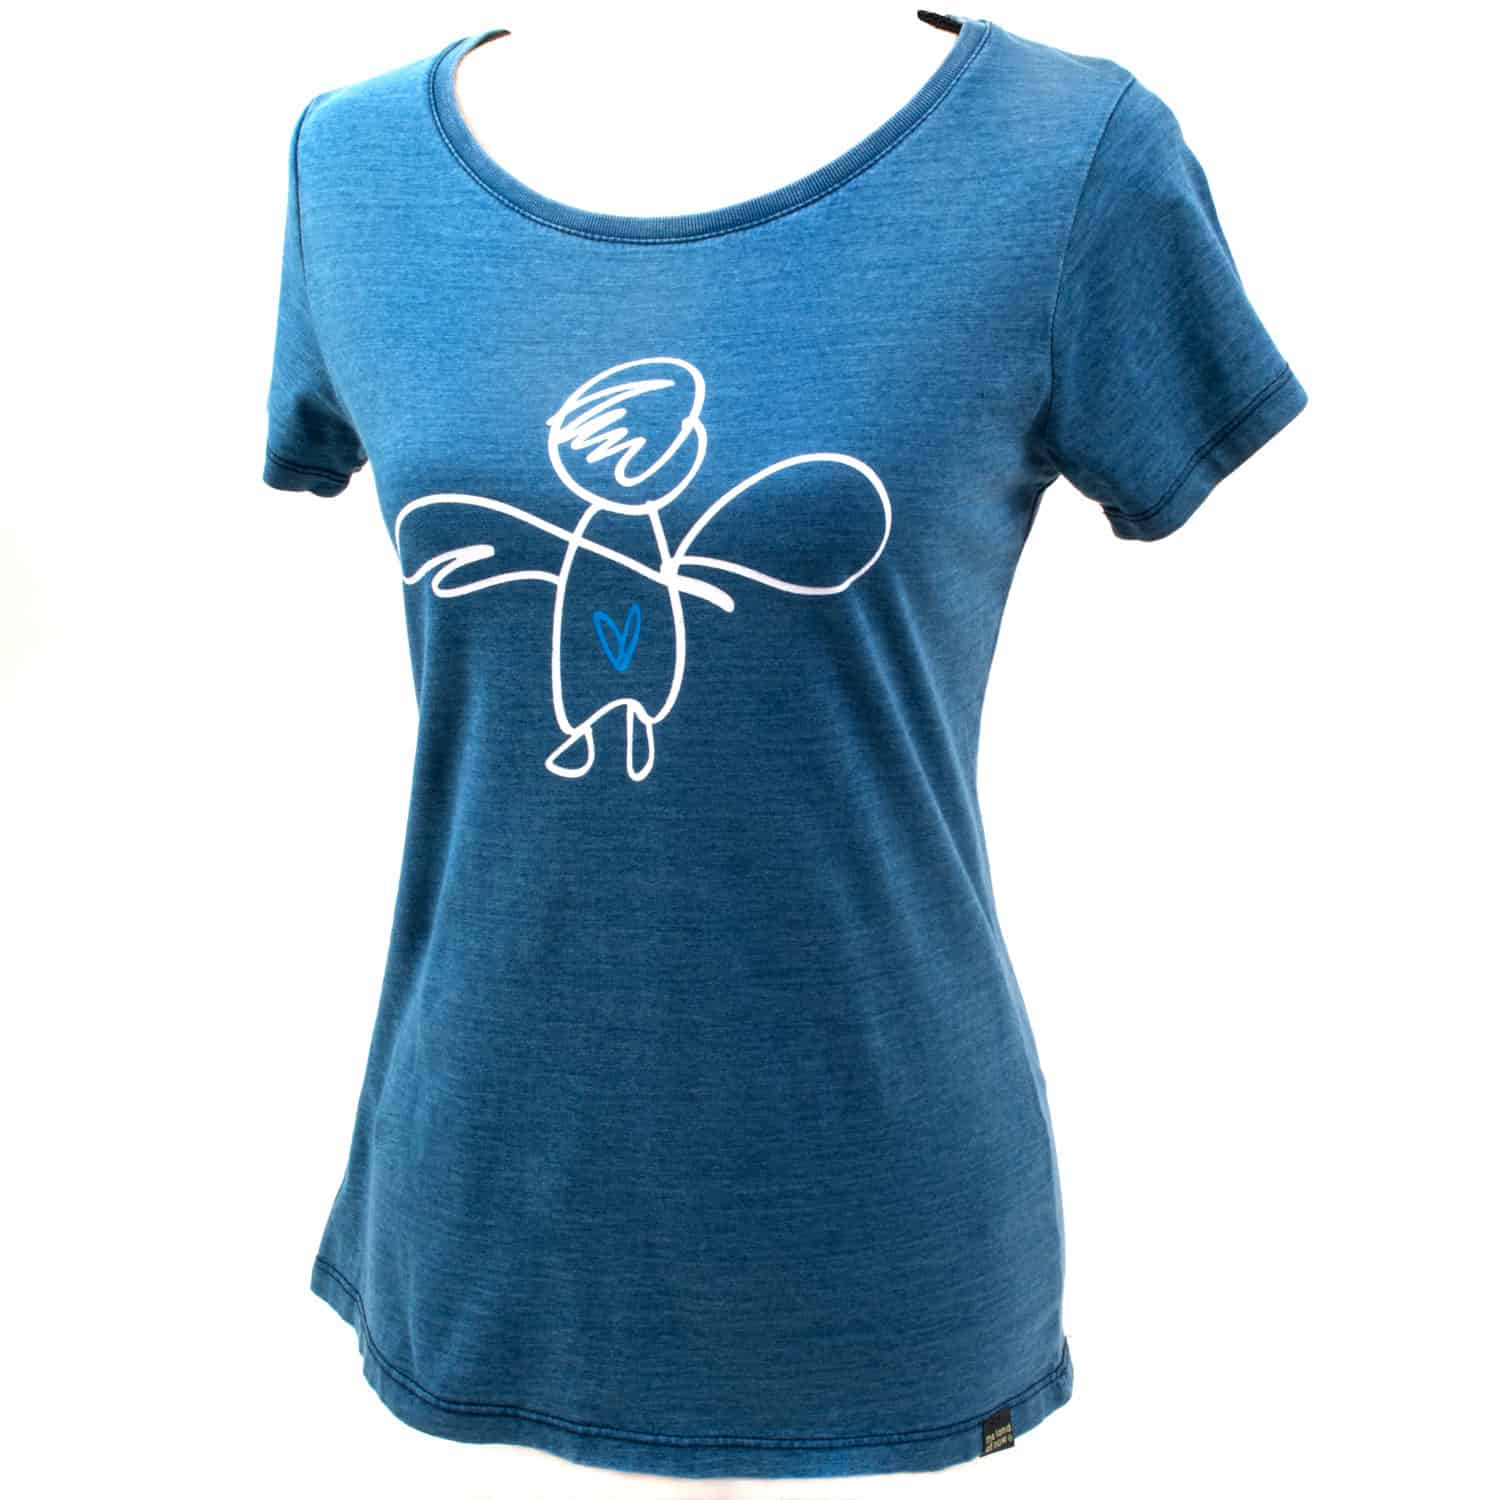 T-shirt - eco cotton - silk screen design - Give your love wings